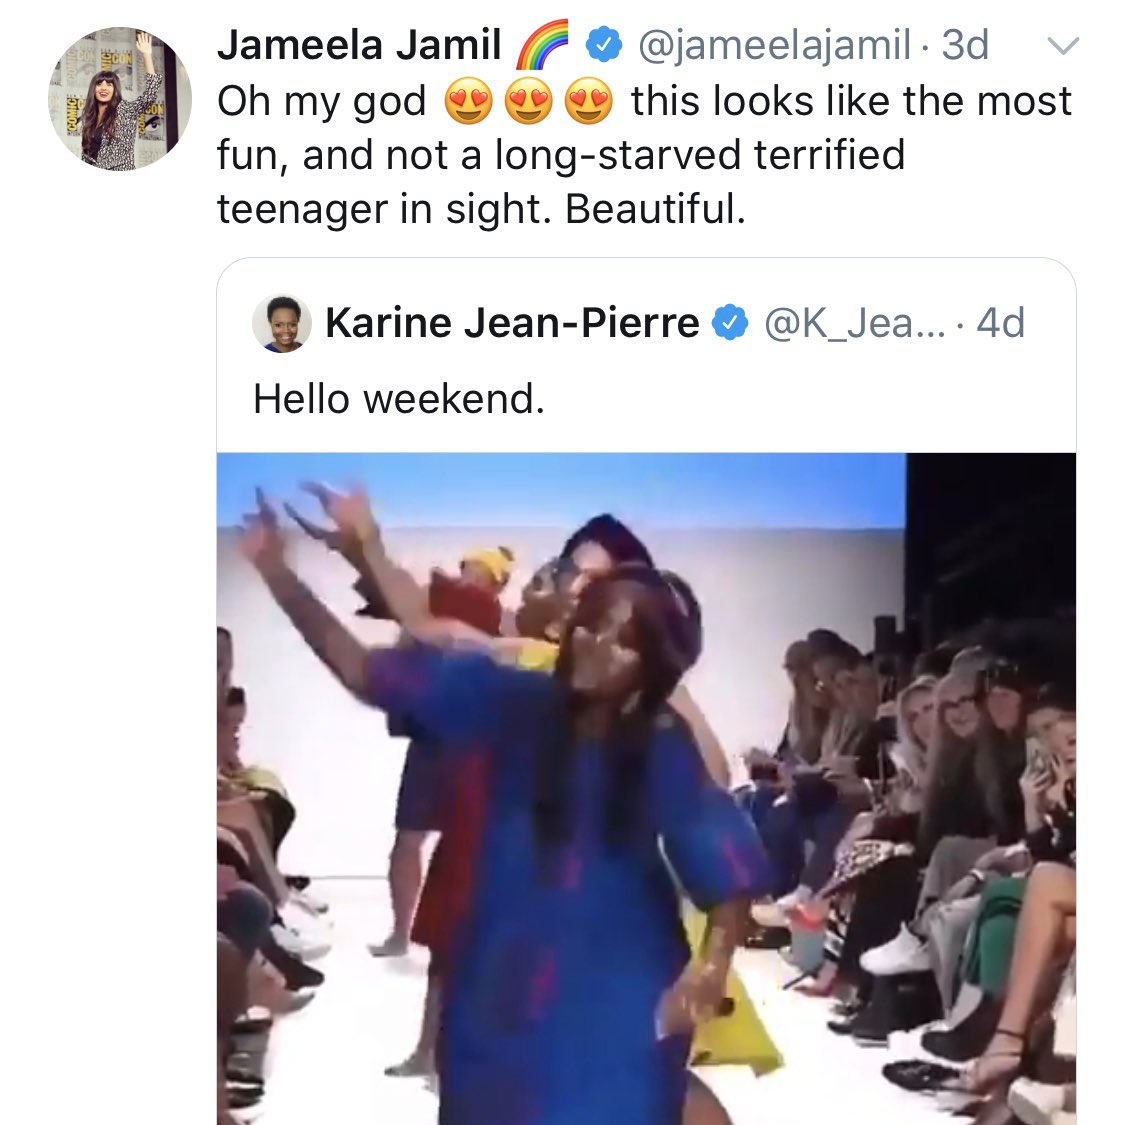 "Victoria's Secret angels Leomie Anderson and Sara Sampaio respond to Jameela Jamil's tweet where she referred to runway models as ""long-starved terrified teenager(s)""."